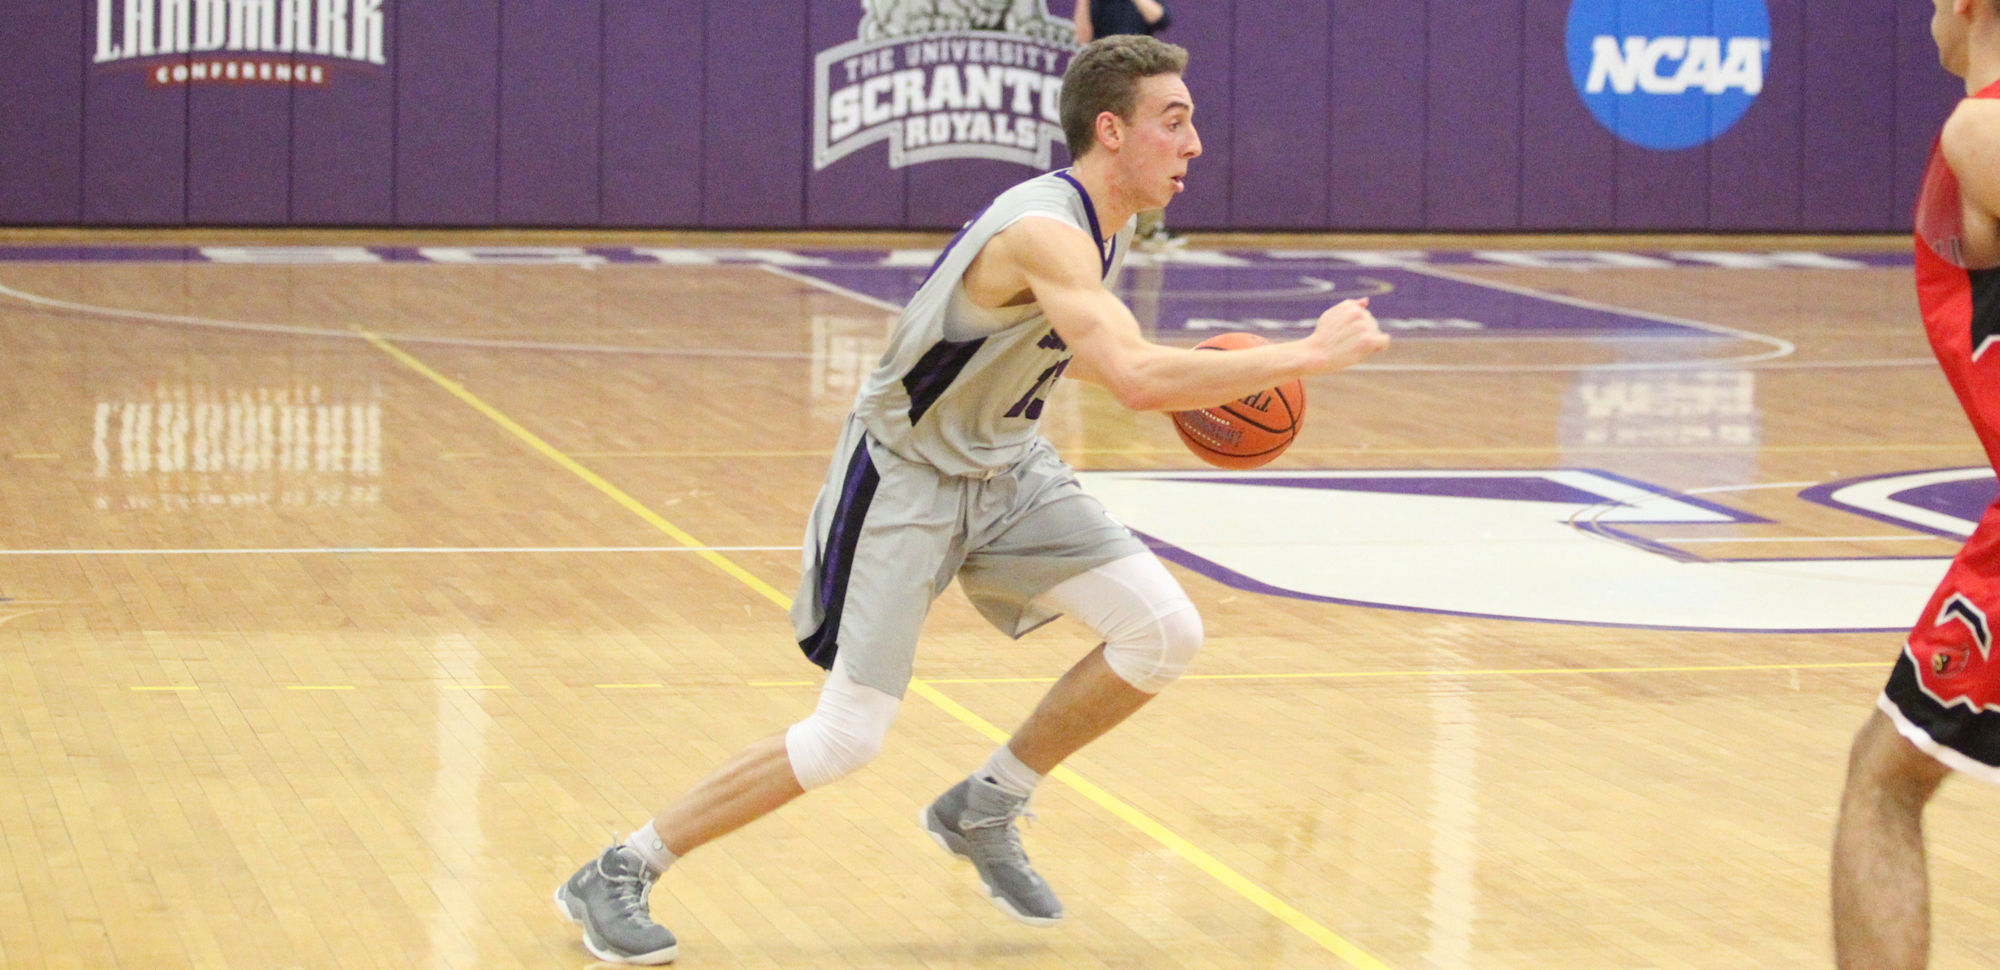 Sophomore Logan Bailey led Scranton with 17 points in a key Landmark Conference win at Catholic on Saturday. © Photo by Timothy R. Dougherty / doubleeaglephotography.com